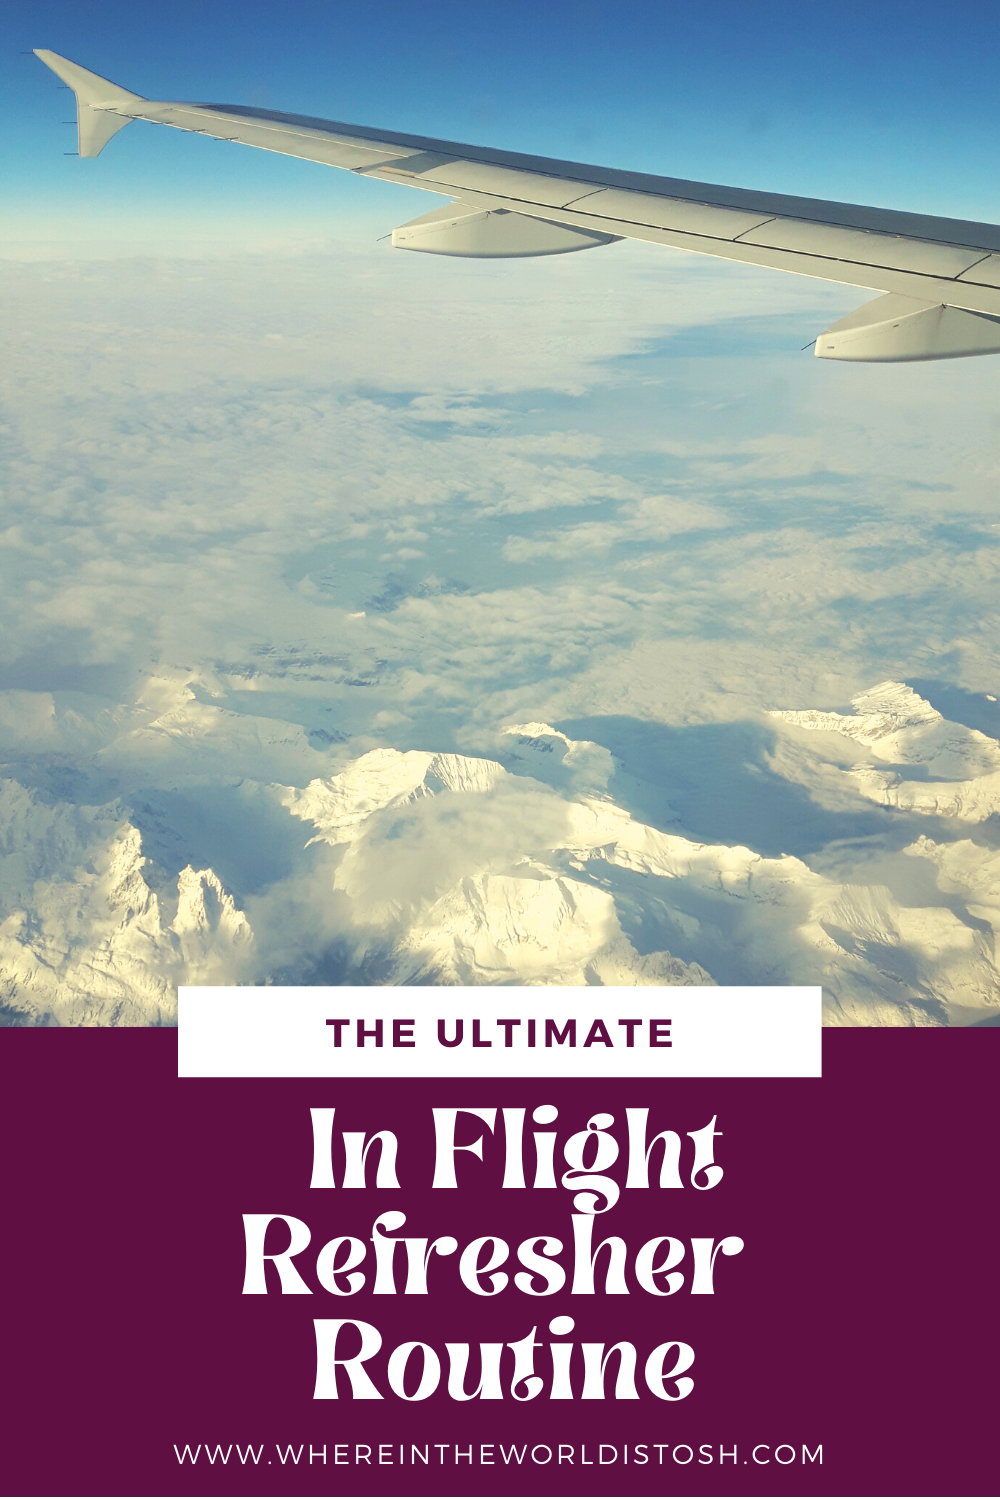 The Ultimate In Flight Refresher Routine